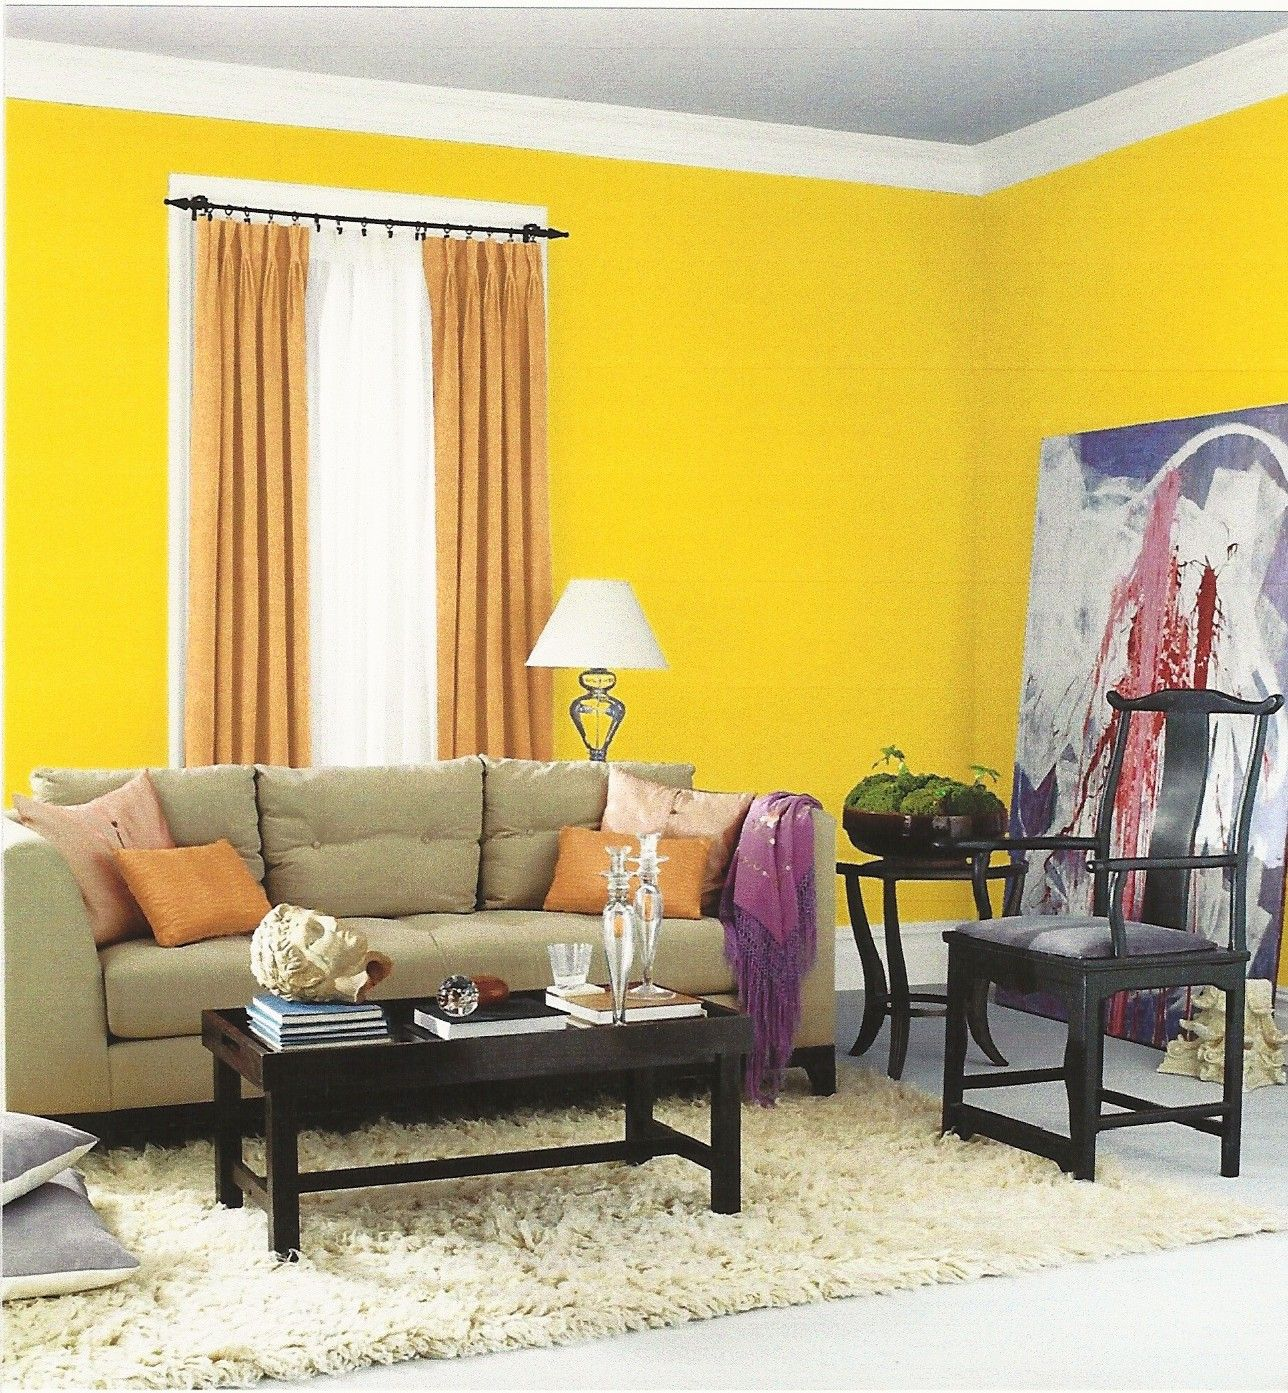 Yellow walls · its no secret that color affects our minds moods and even our bodies